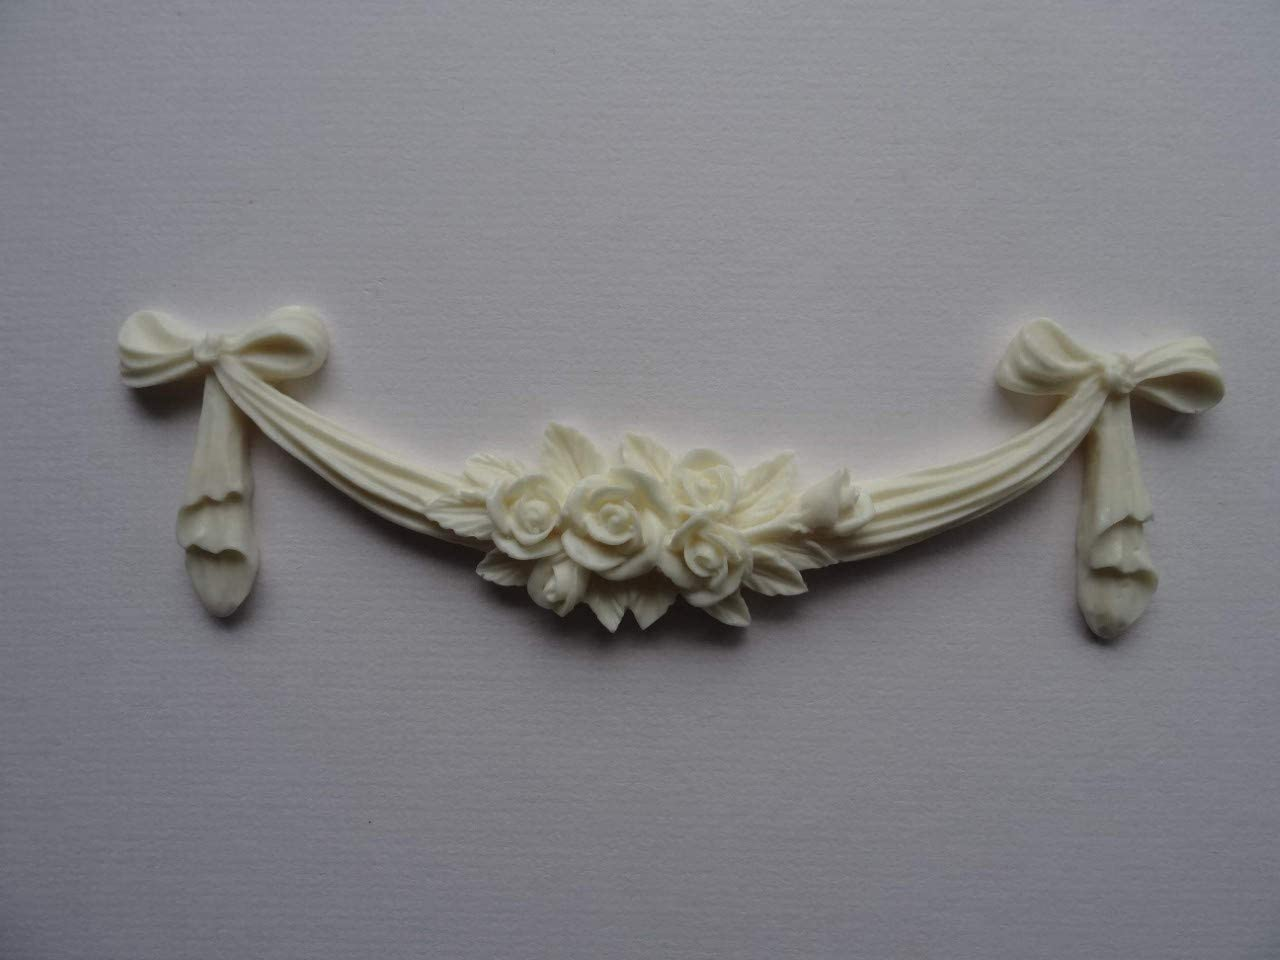 RSB1 Decorative Rose Swag Bow Applique onlay Furniture Moulding